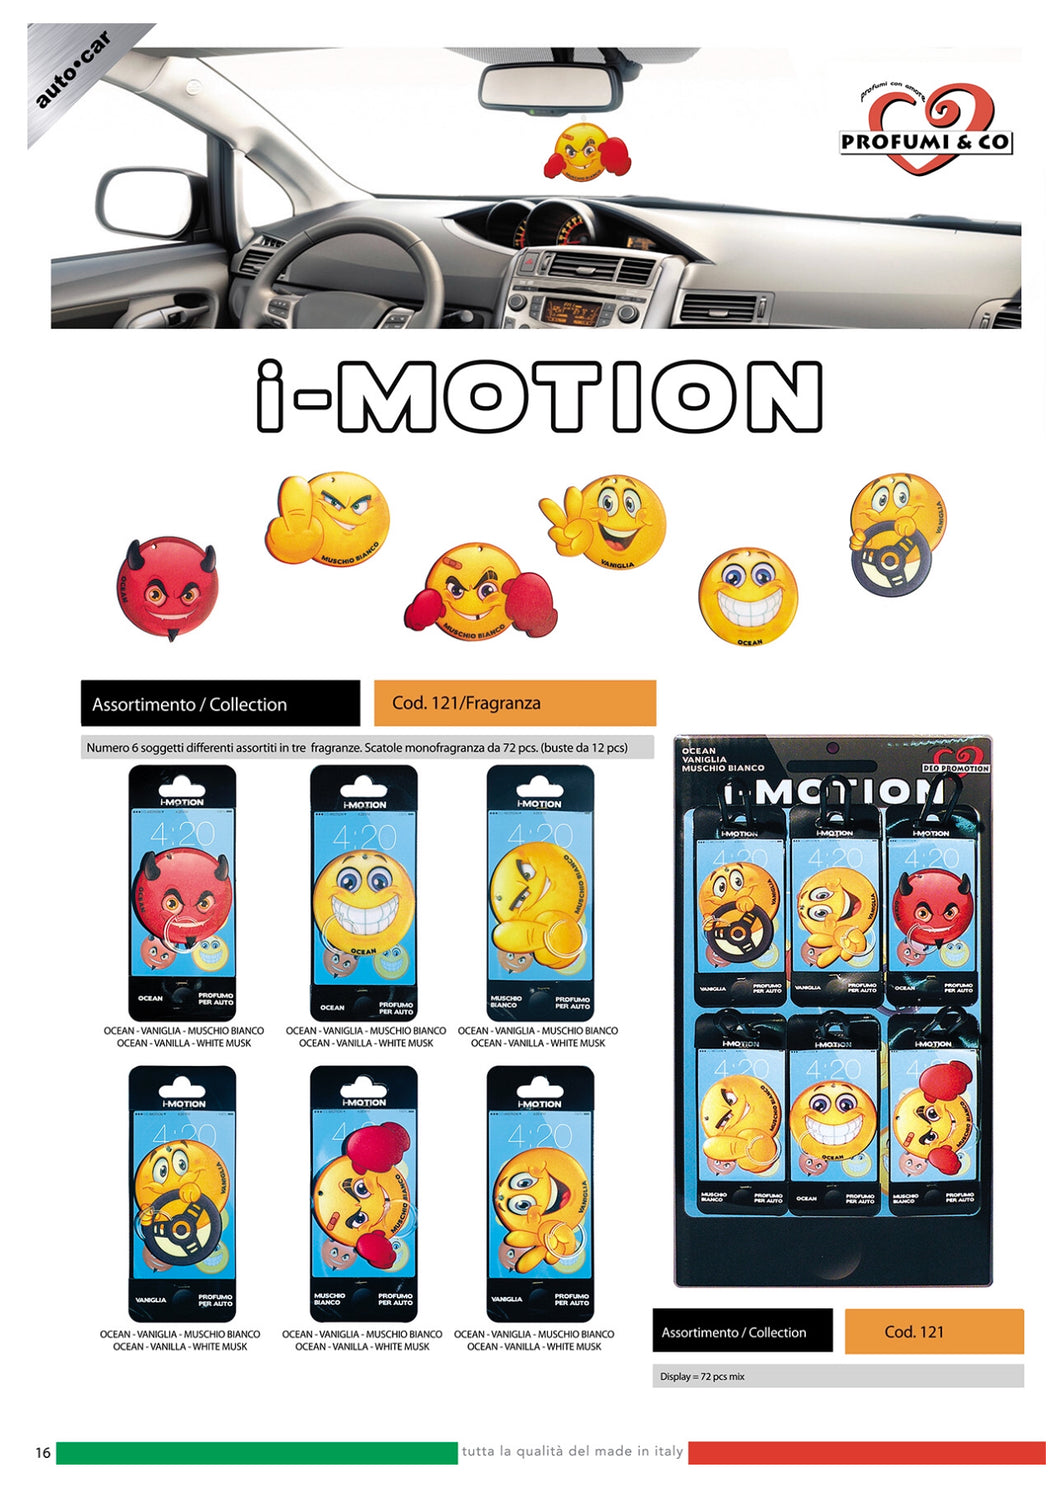 Air Freshener - I-Motion 72 pic